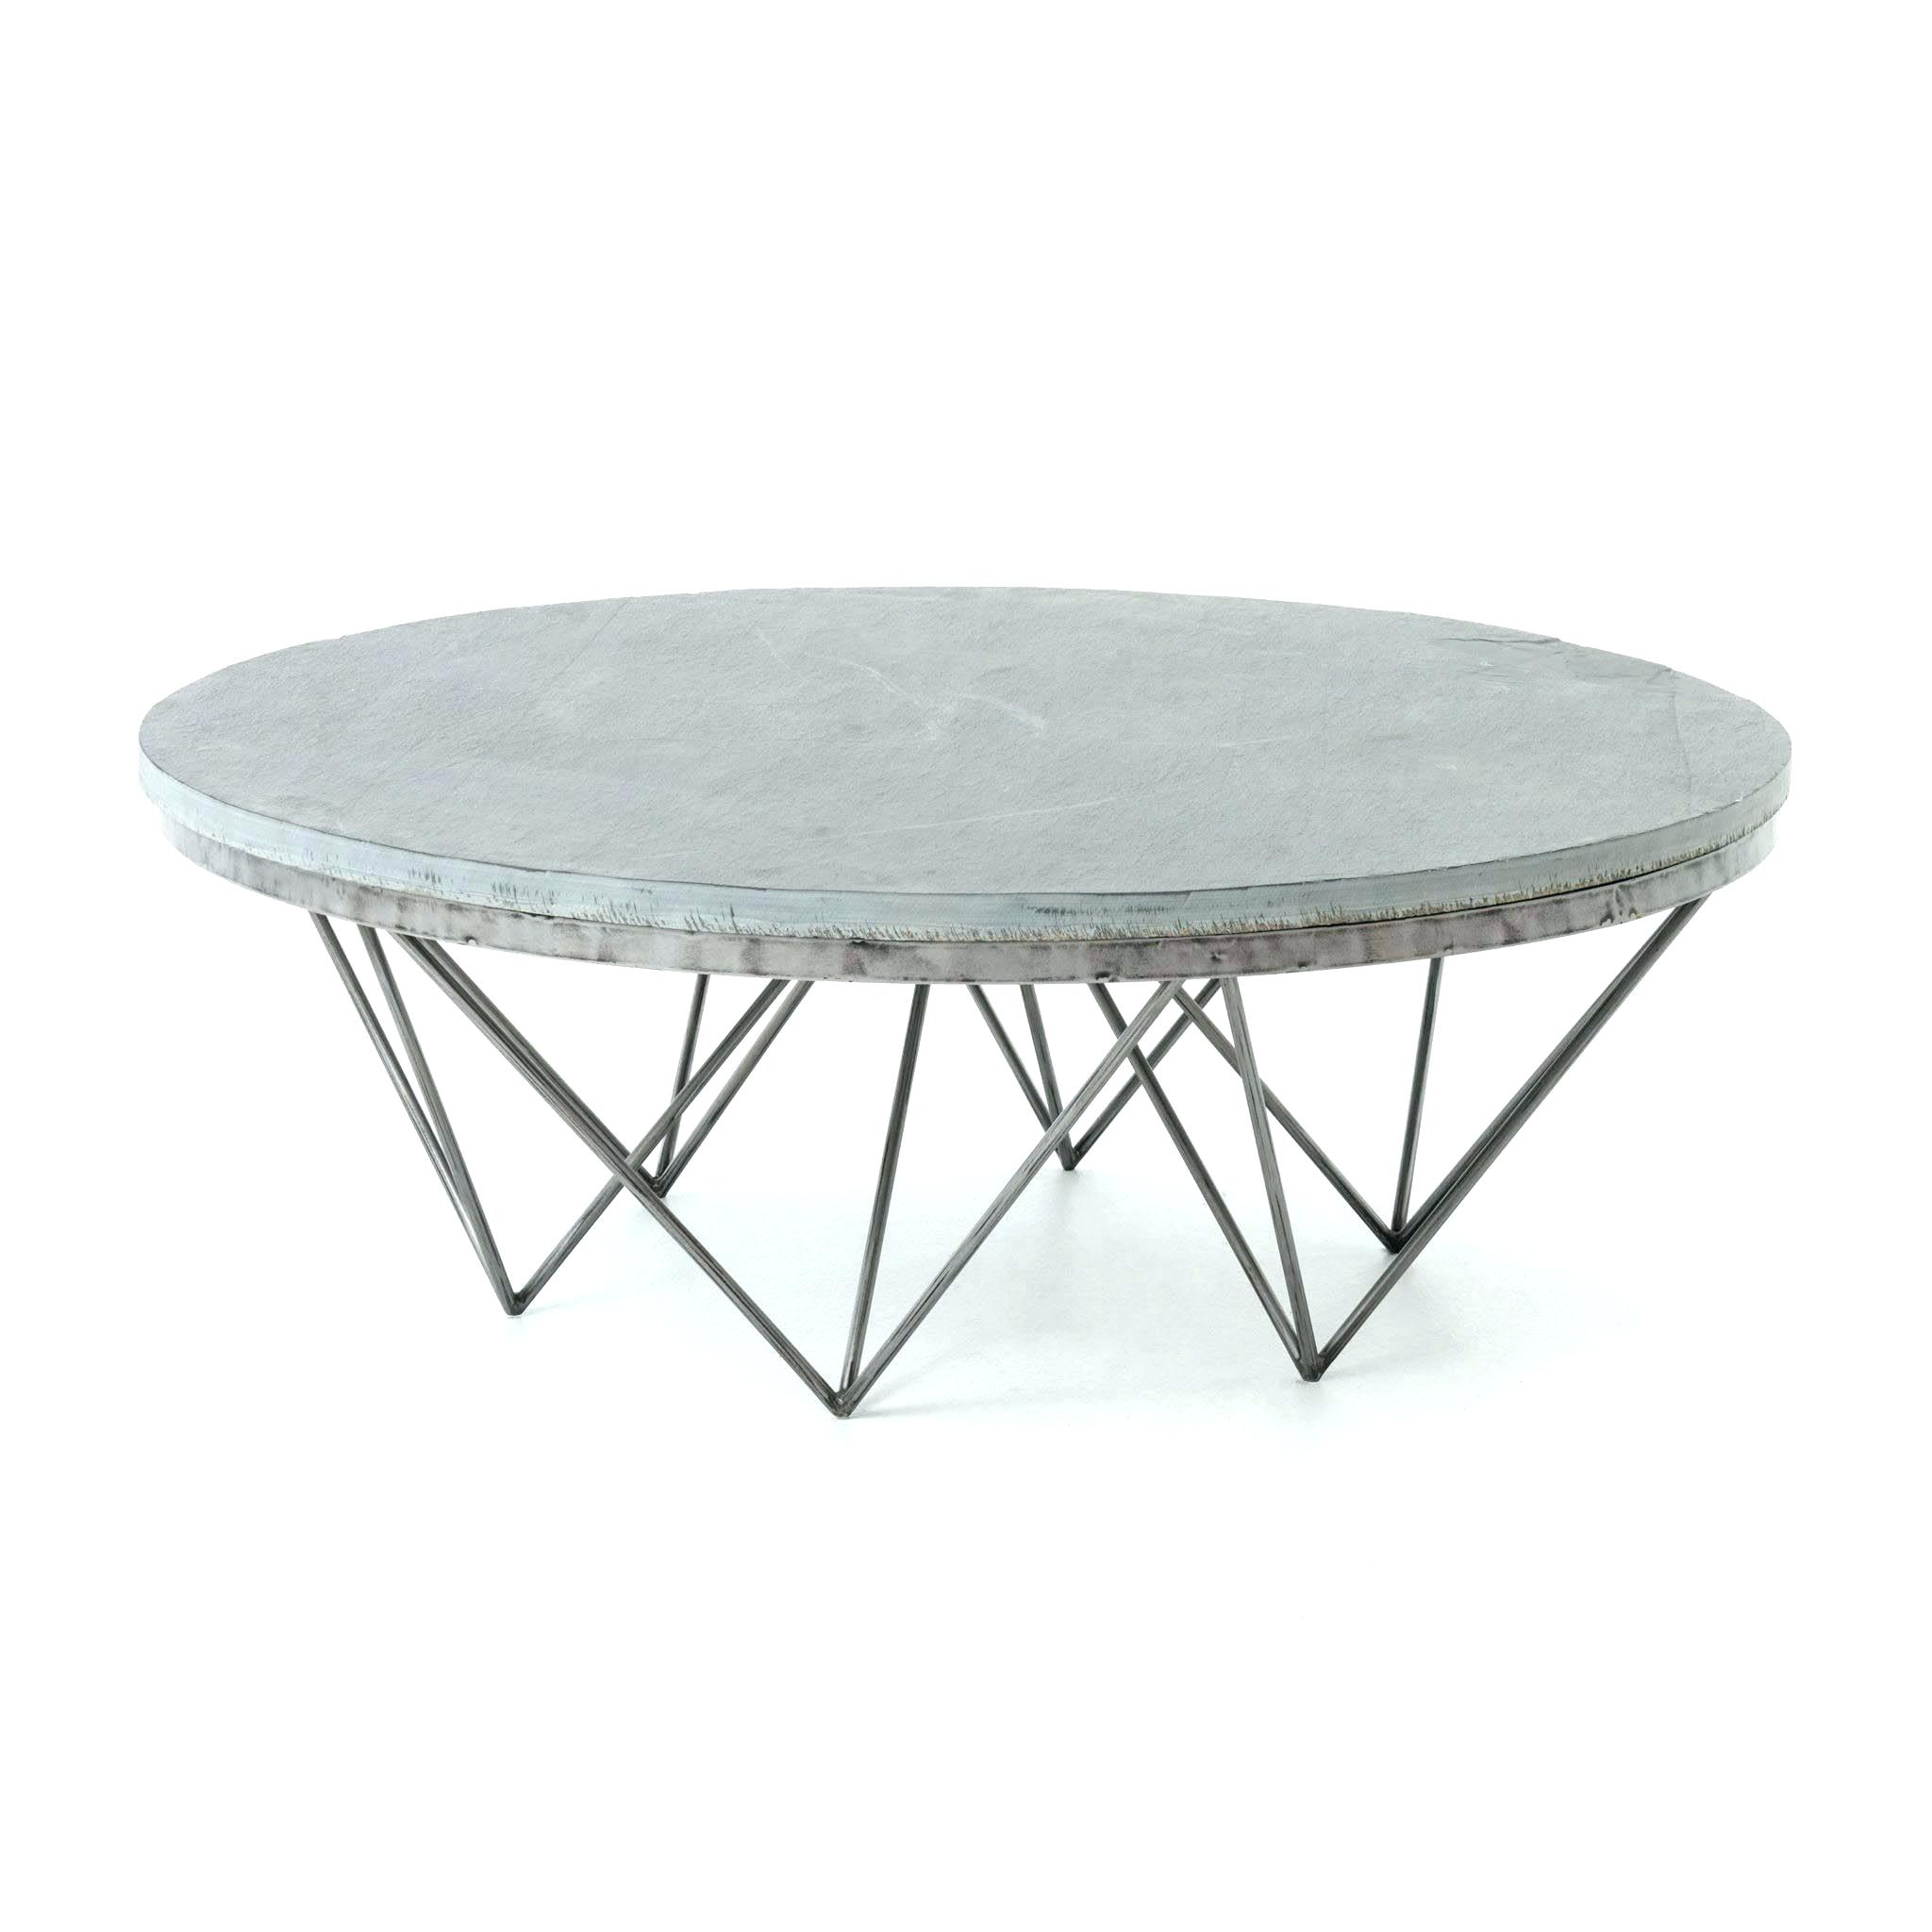 2048x2048 Petrified Wood Coffee Table Fit For Interior Design Full Size